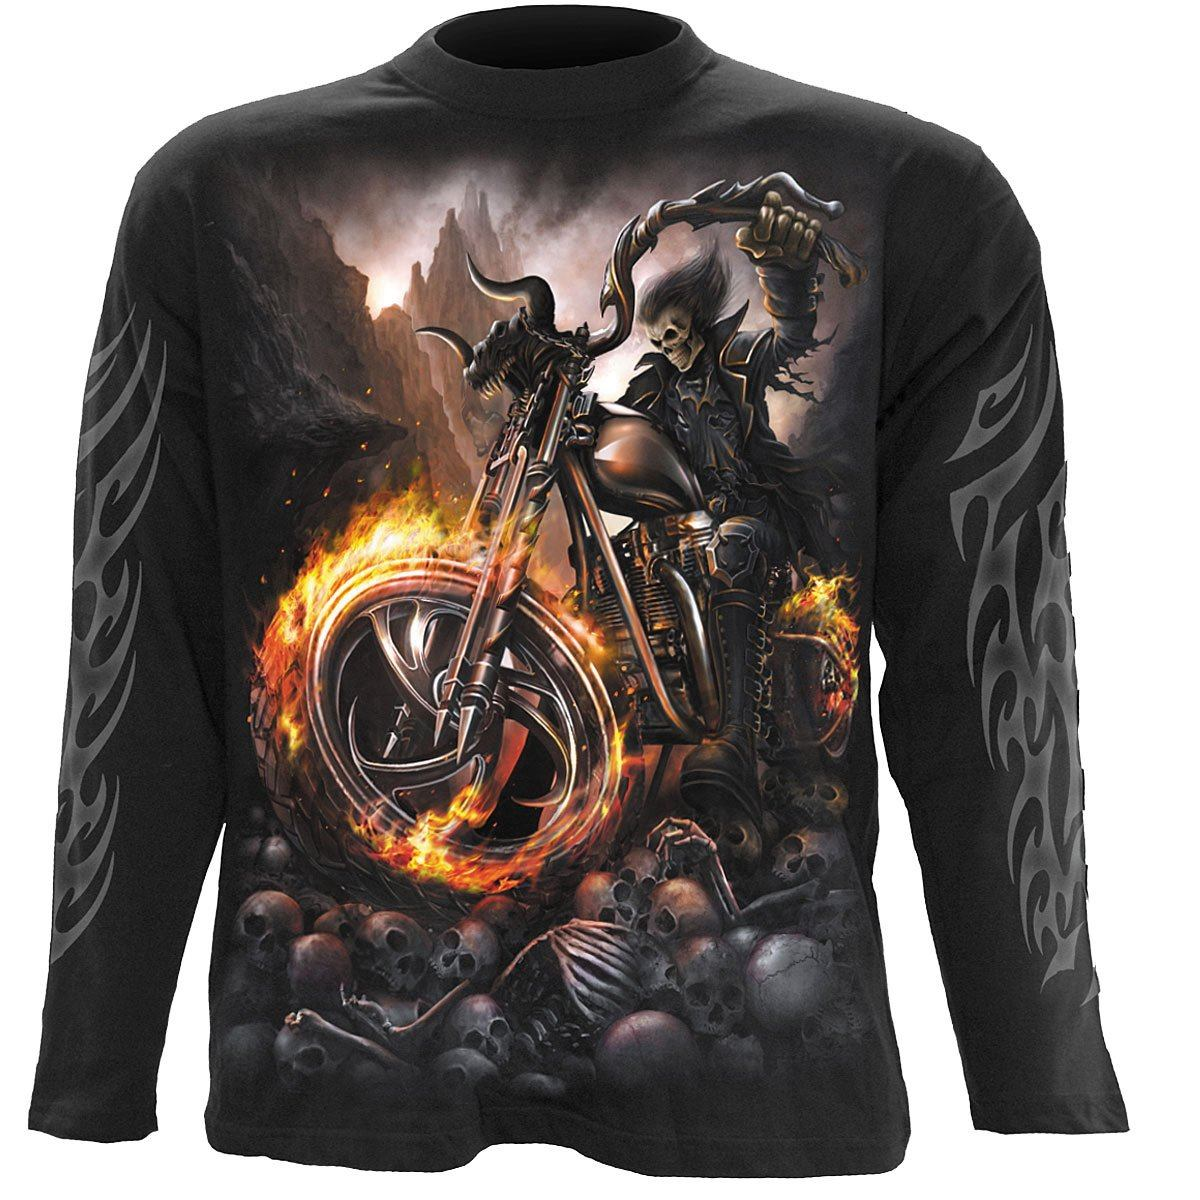 Demonic Biker Men's Black Longsleeve Shirt